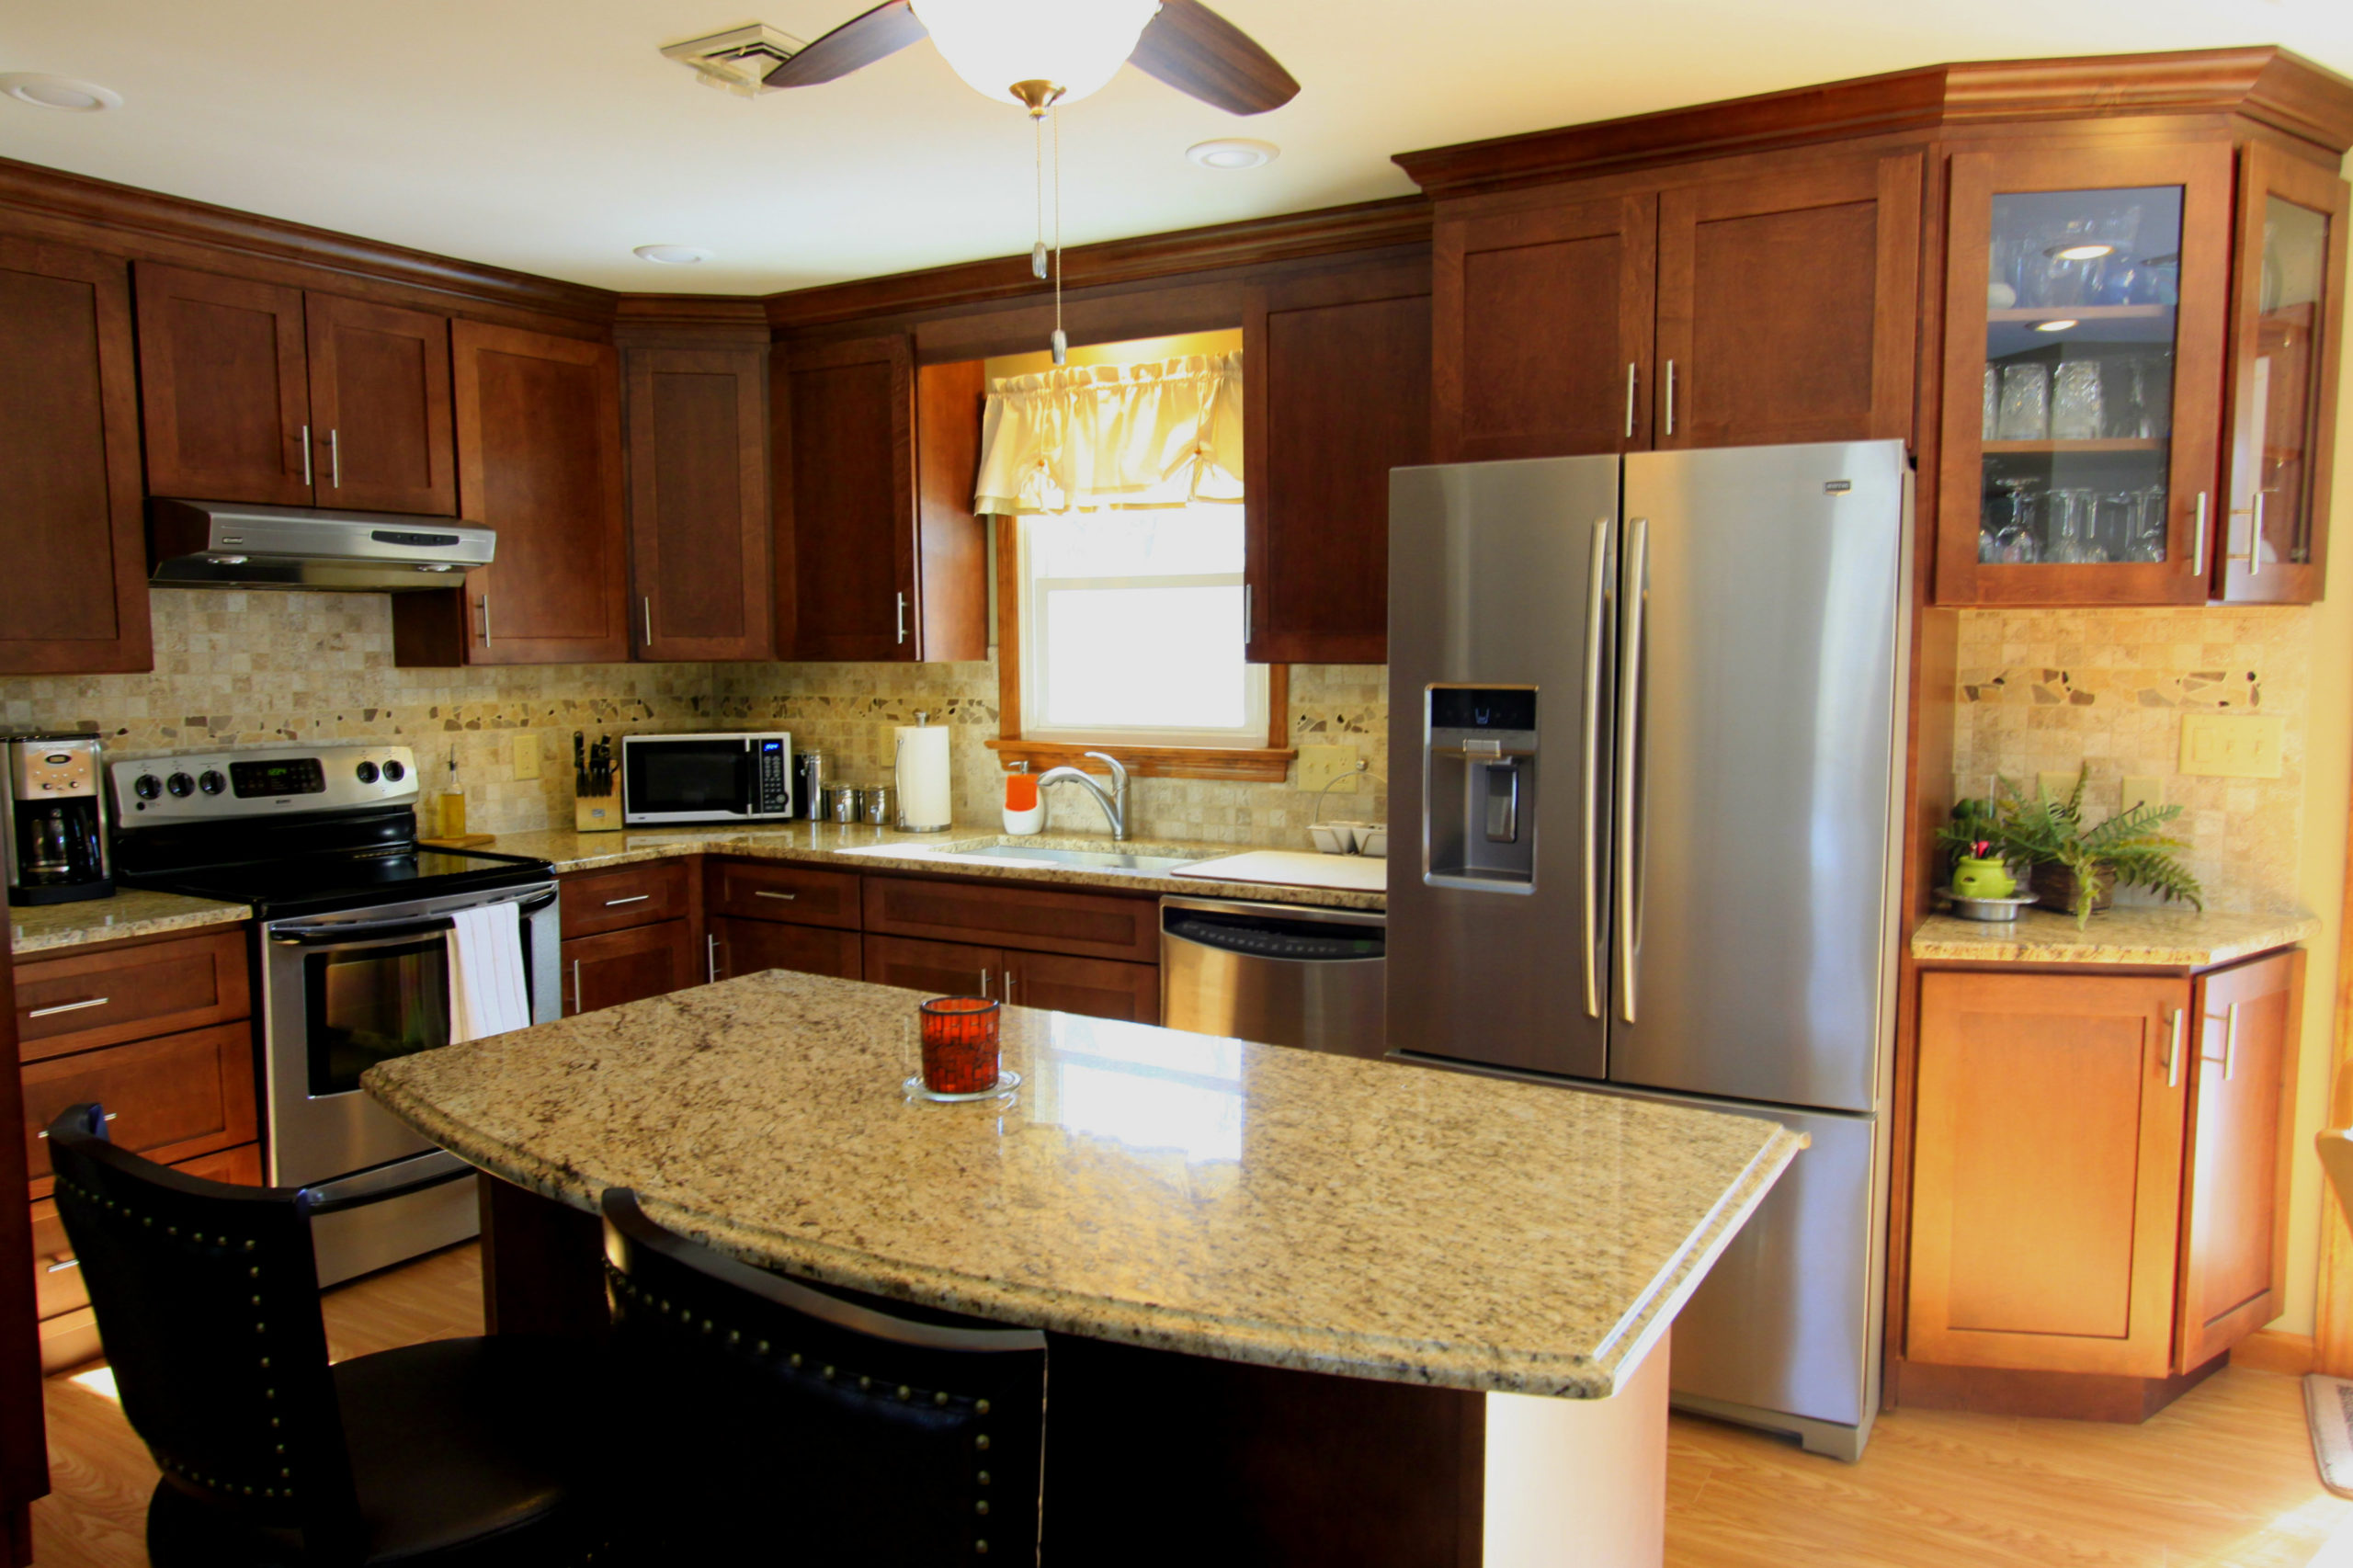 A Kitchen Remodel Can Provide Many Benefits That Will Not Only Increase The  Value Of Your Home, But Also Create A Space That Is Efficient And  Functional For ...